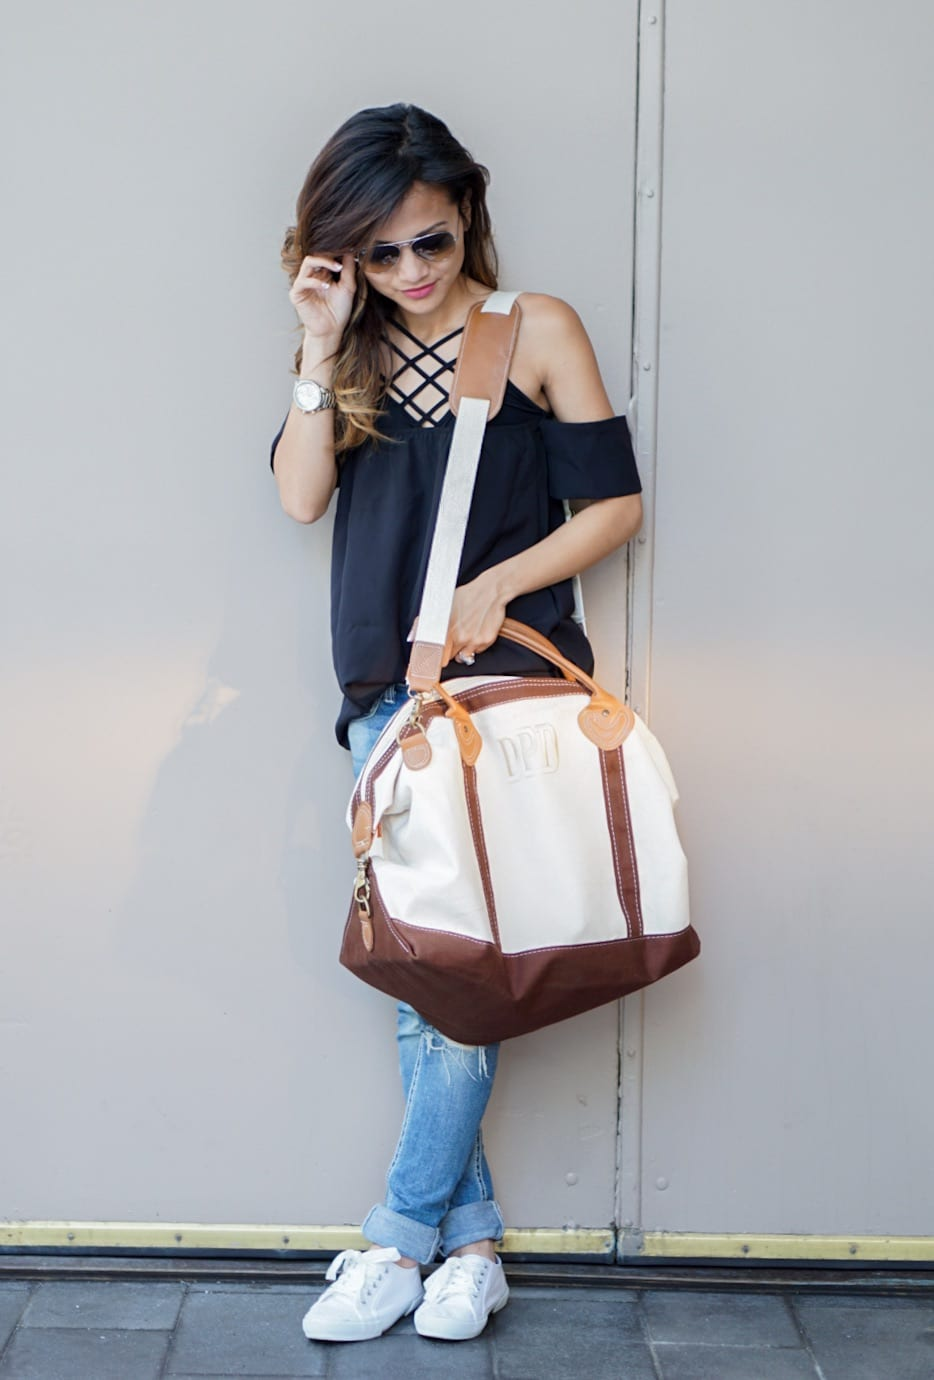 5 Travel Tips for Packing your Carry-On Bag, MONOGRAMMED LUGGAGE